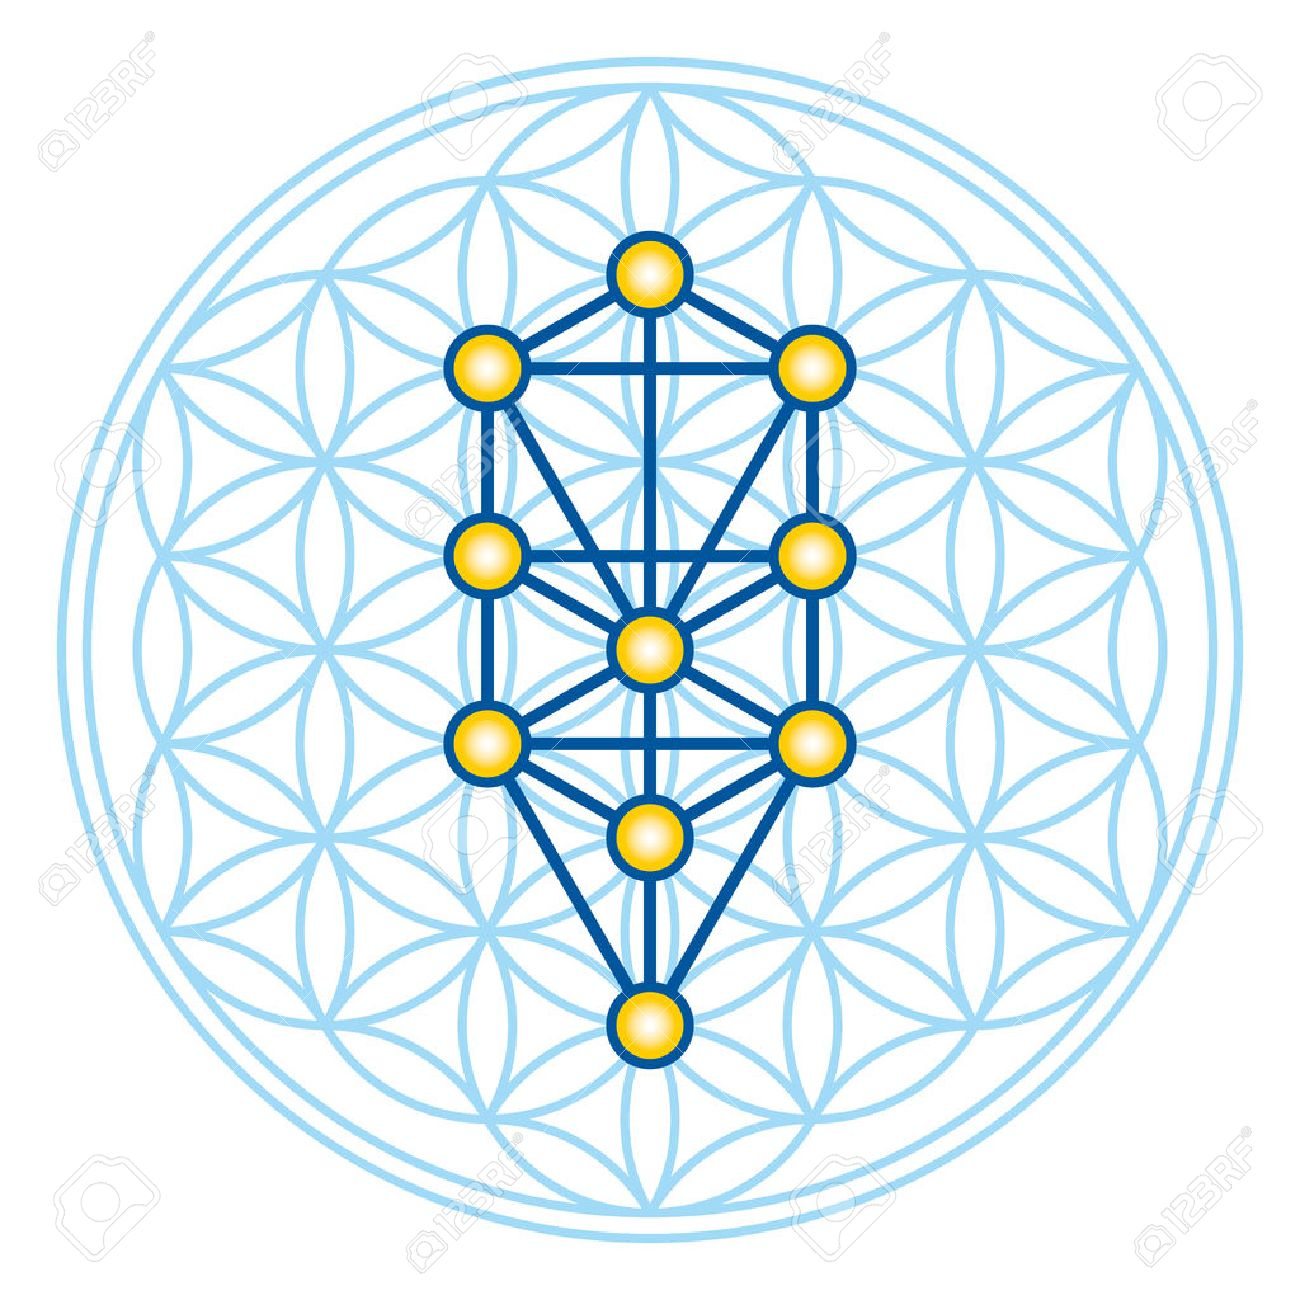 Flower Of Life In Tree Of Life Sephirots Of Kabbalah In Ancient Royalty Free Cliparts Vectors And Stock Illustration Image 73766244 The sefirah (also known as the tree of life) outlines the different parts of your emotional life. flower of life in tree of life sephirots of kabbalah in ancient